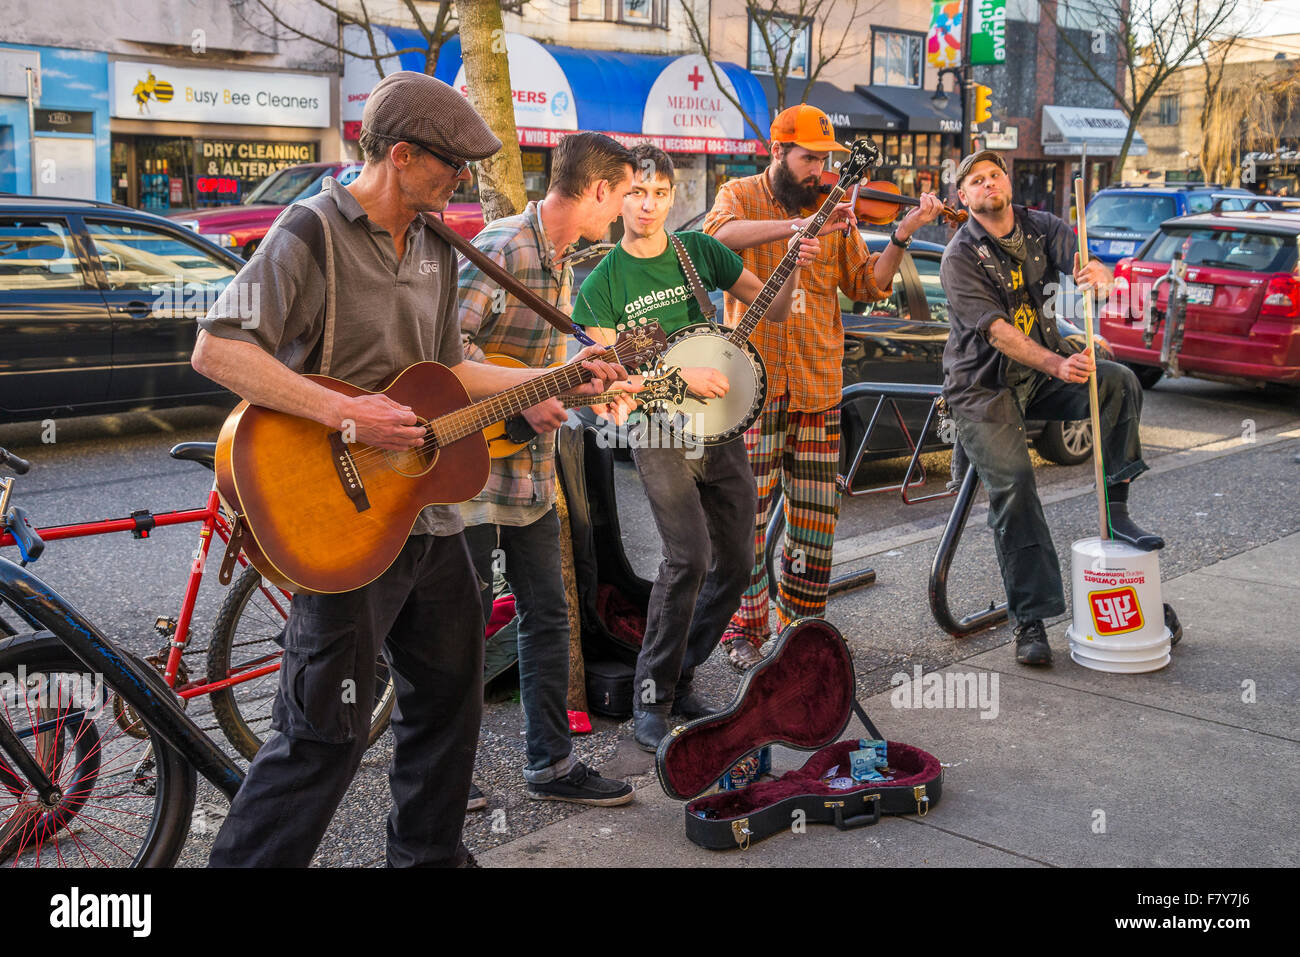 Buskers, Commercial Drive, Vancouver, British Columbia, Canada. - Stock Image